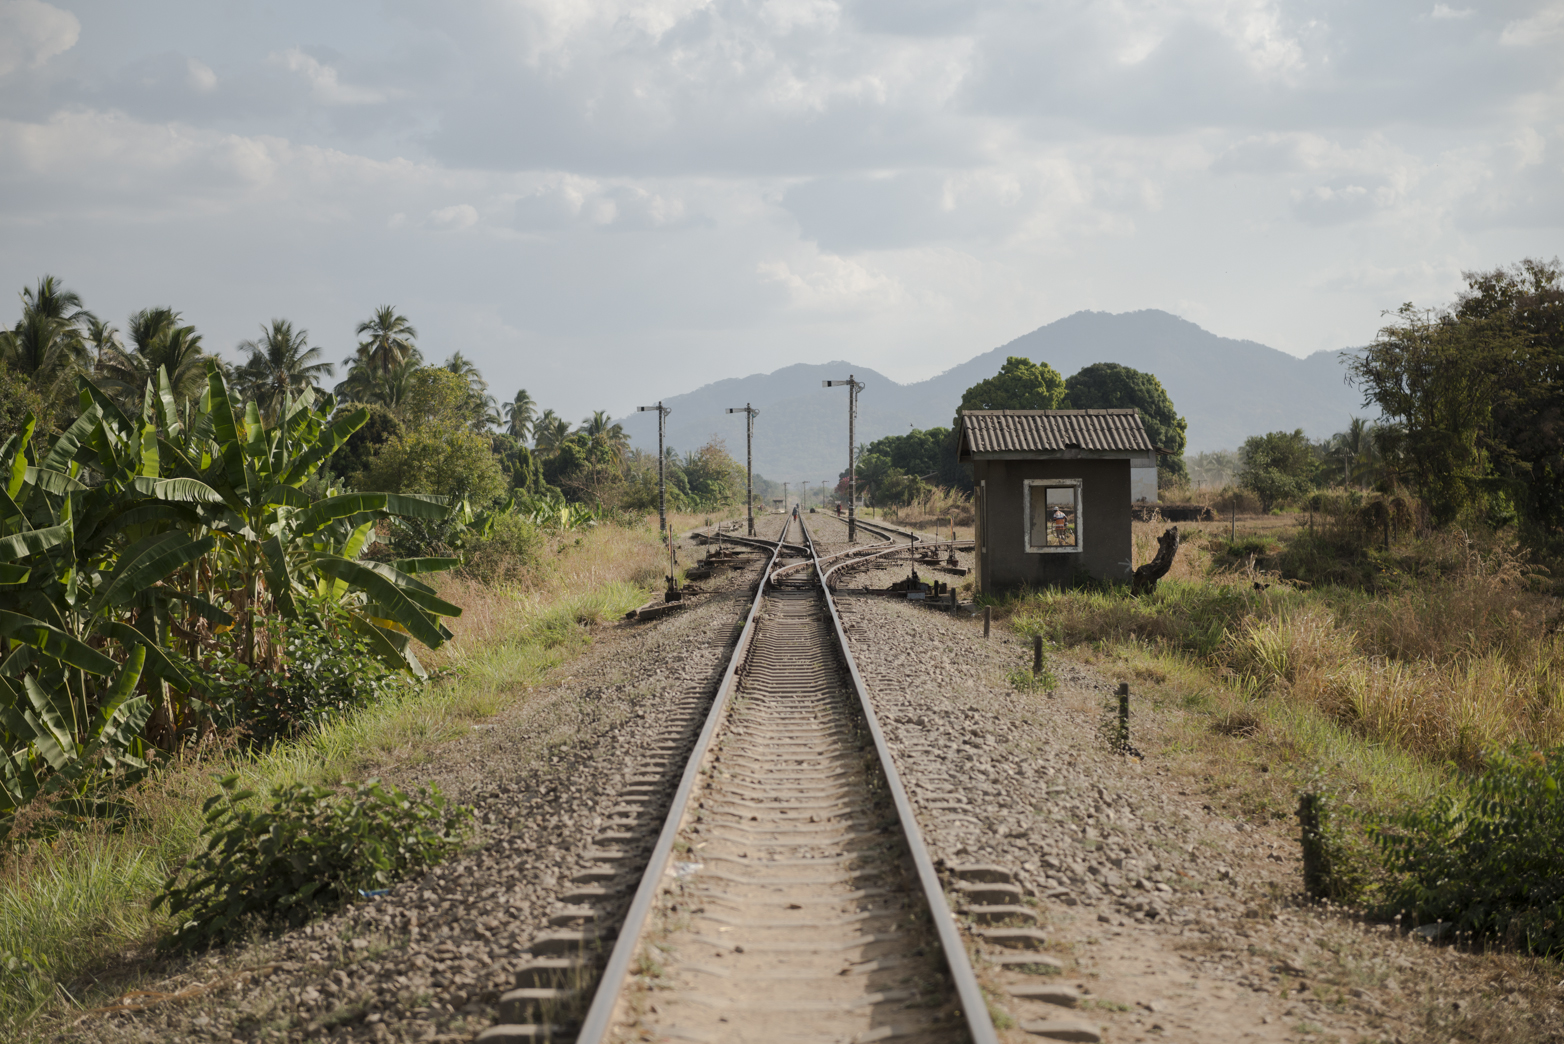 Train tracks in Nyamwezi